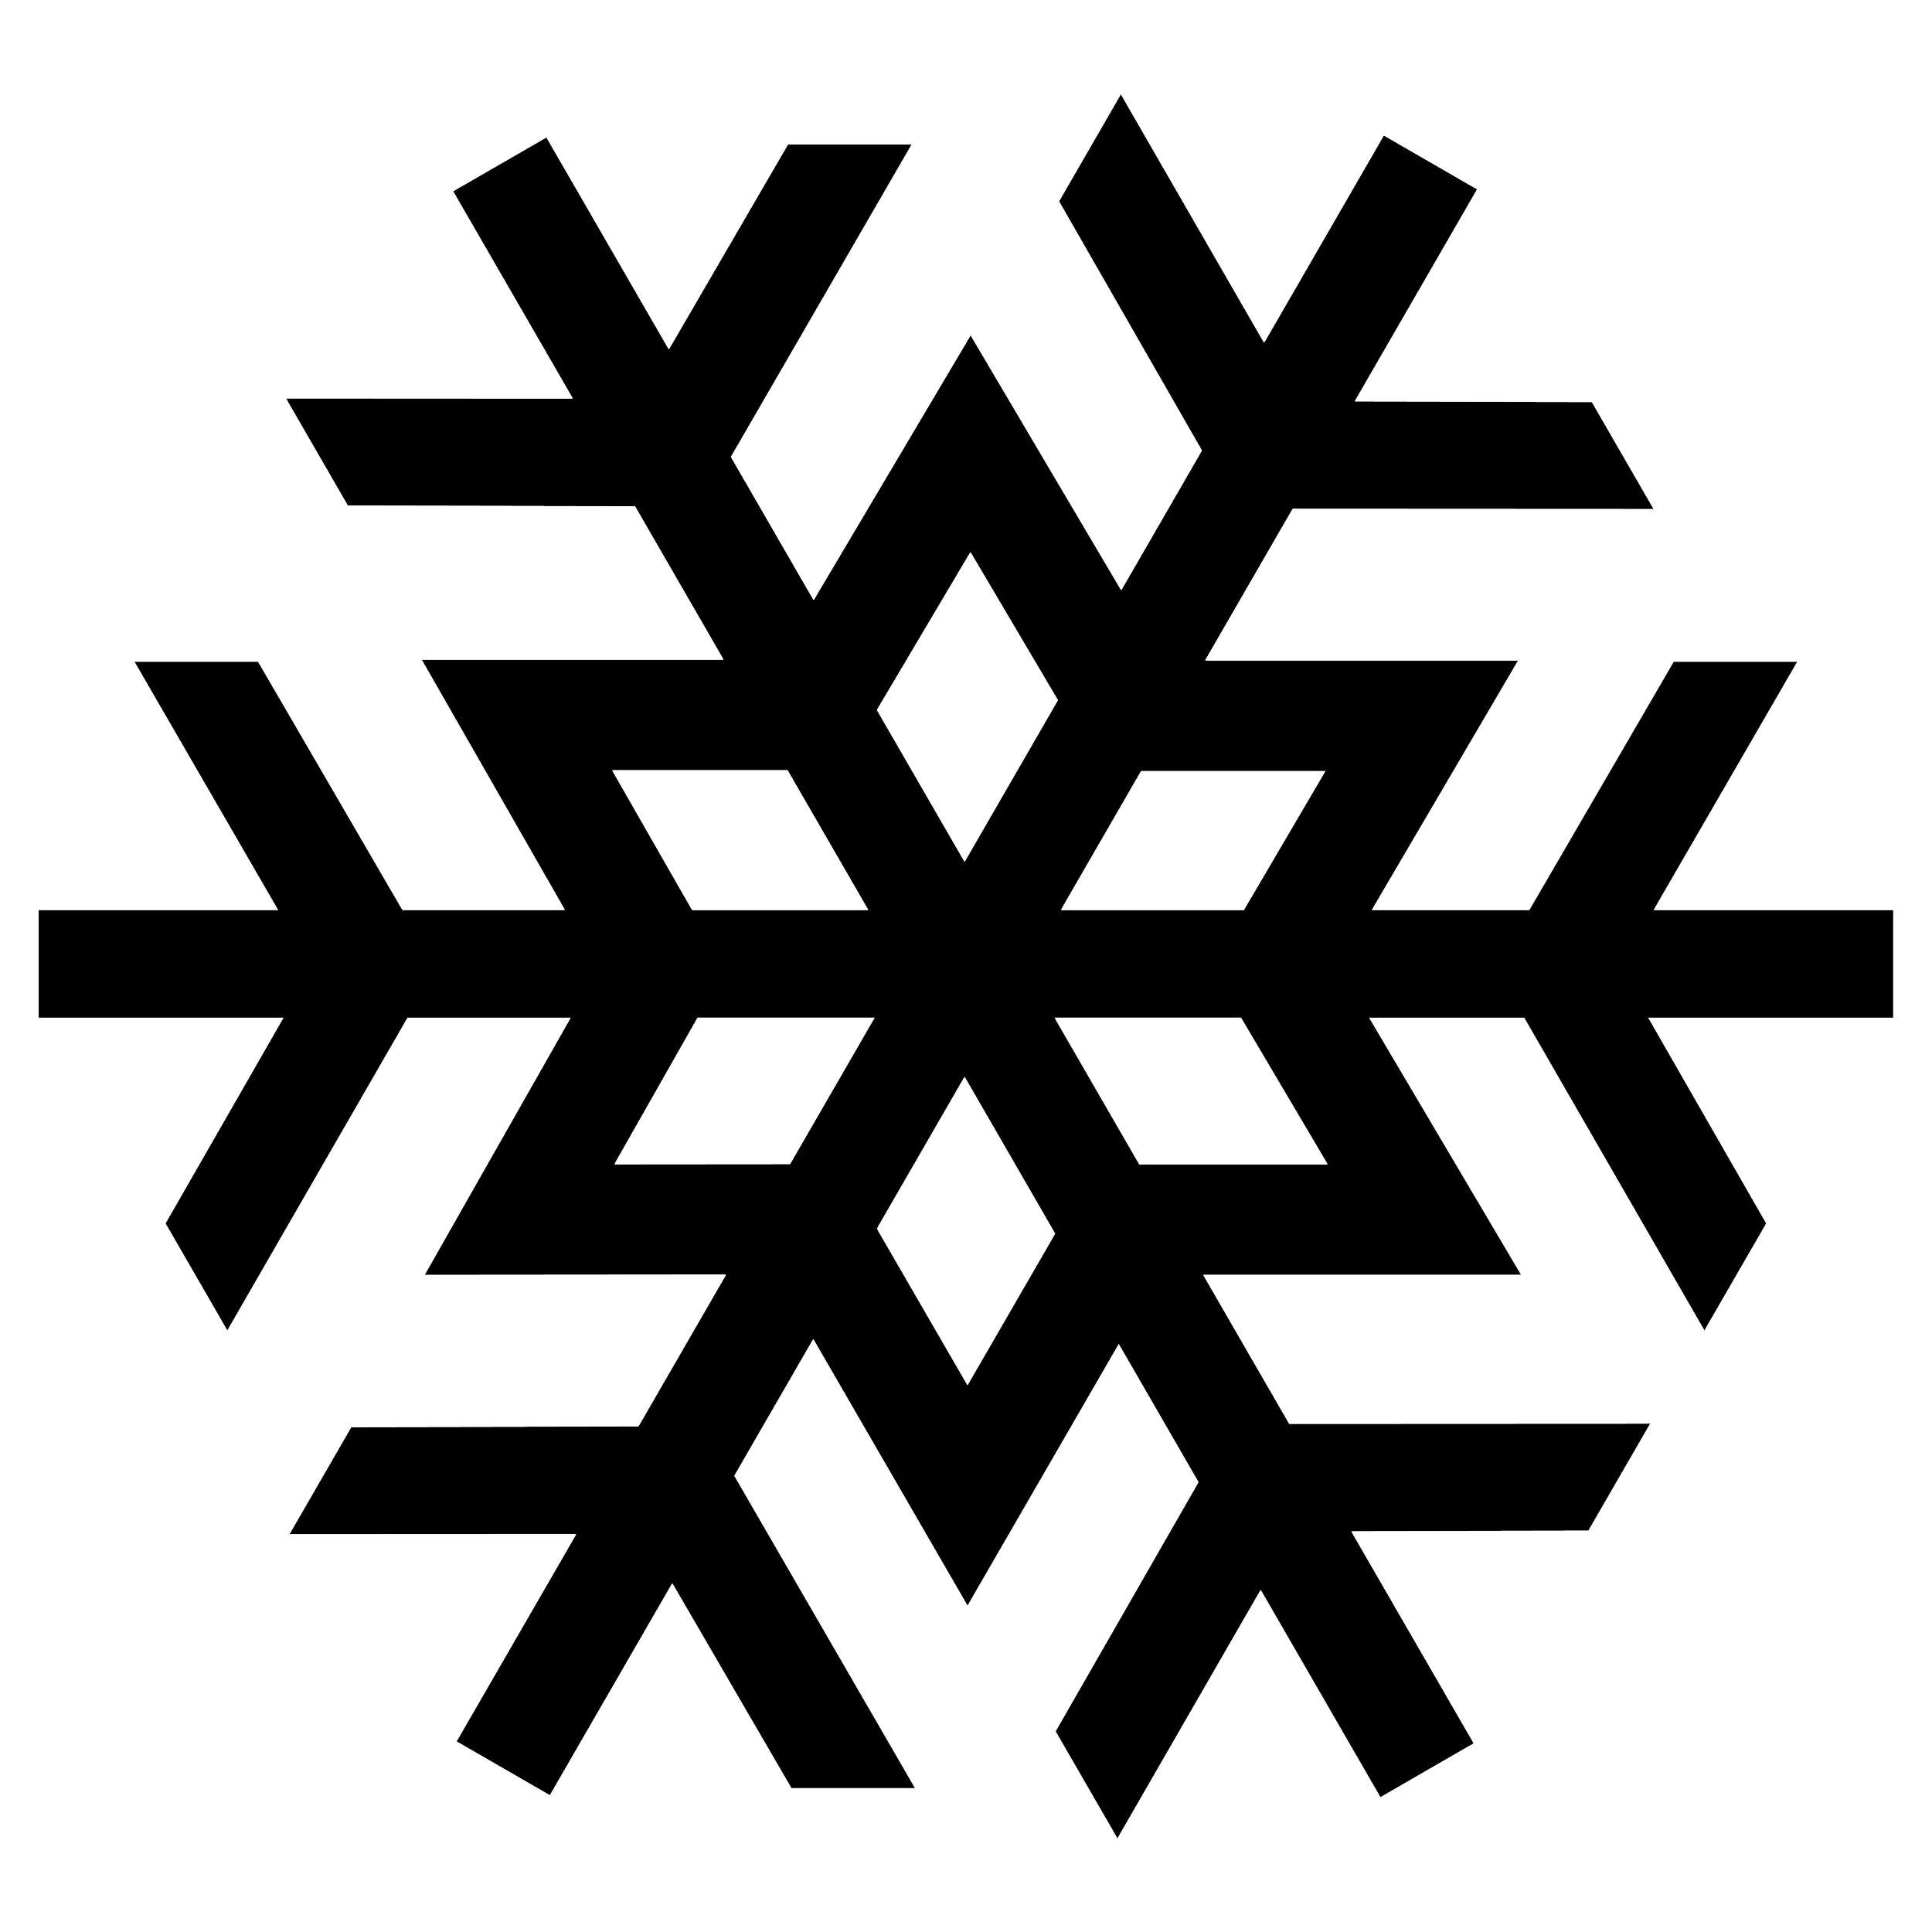 snowflake silhouette - Google Search | shapes - line | Pinterest ... clip black and white download